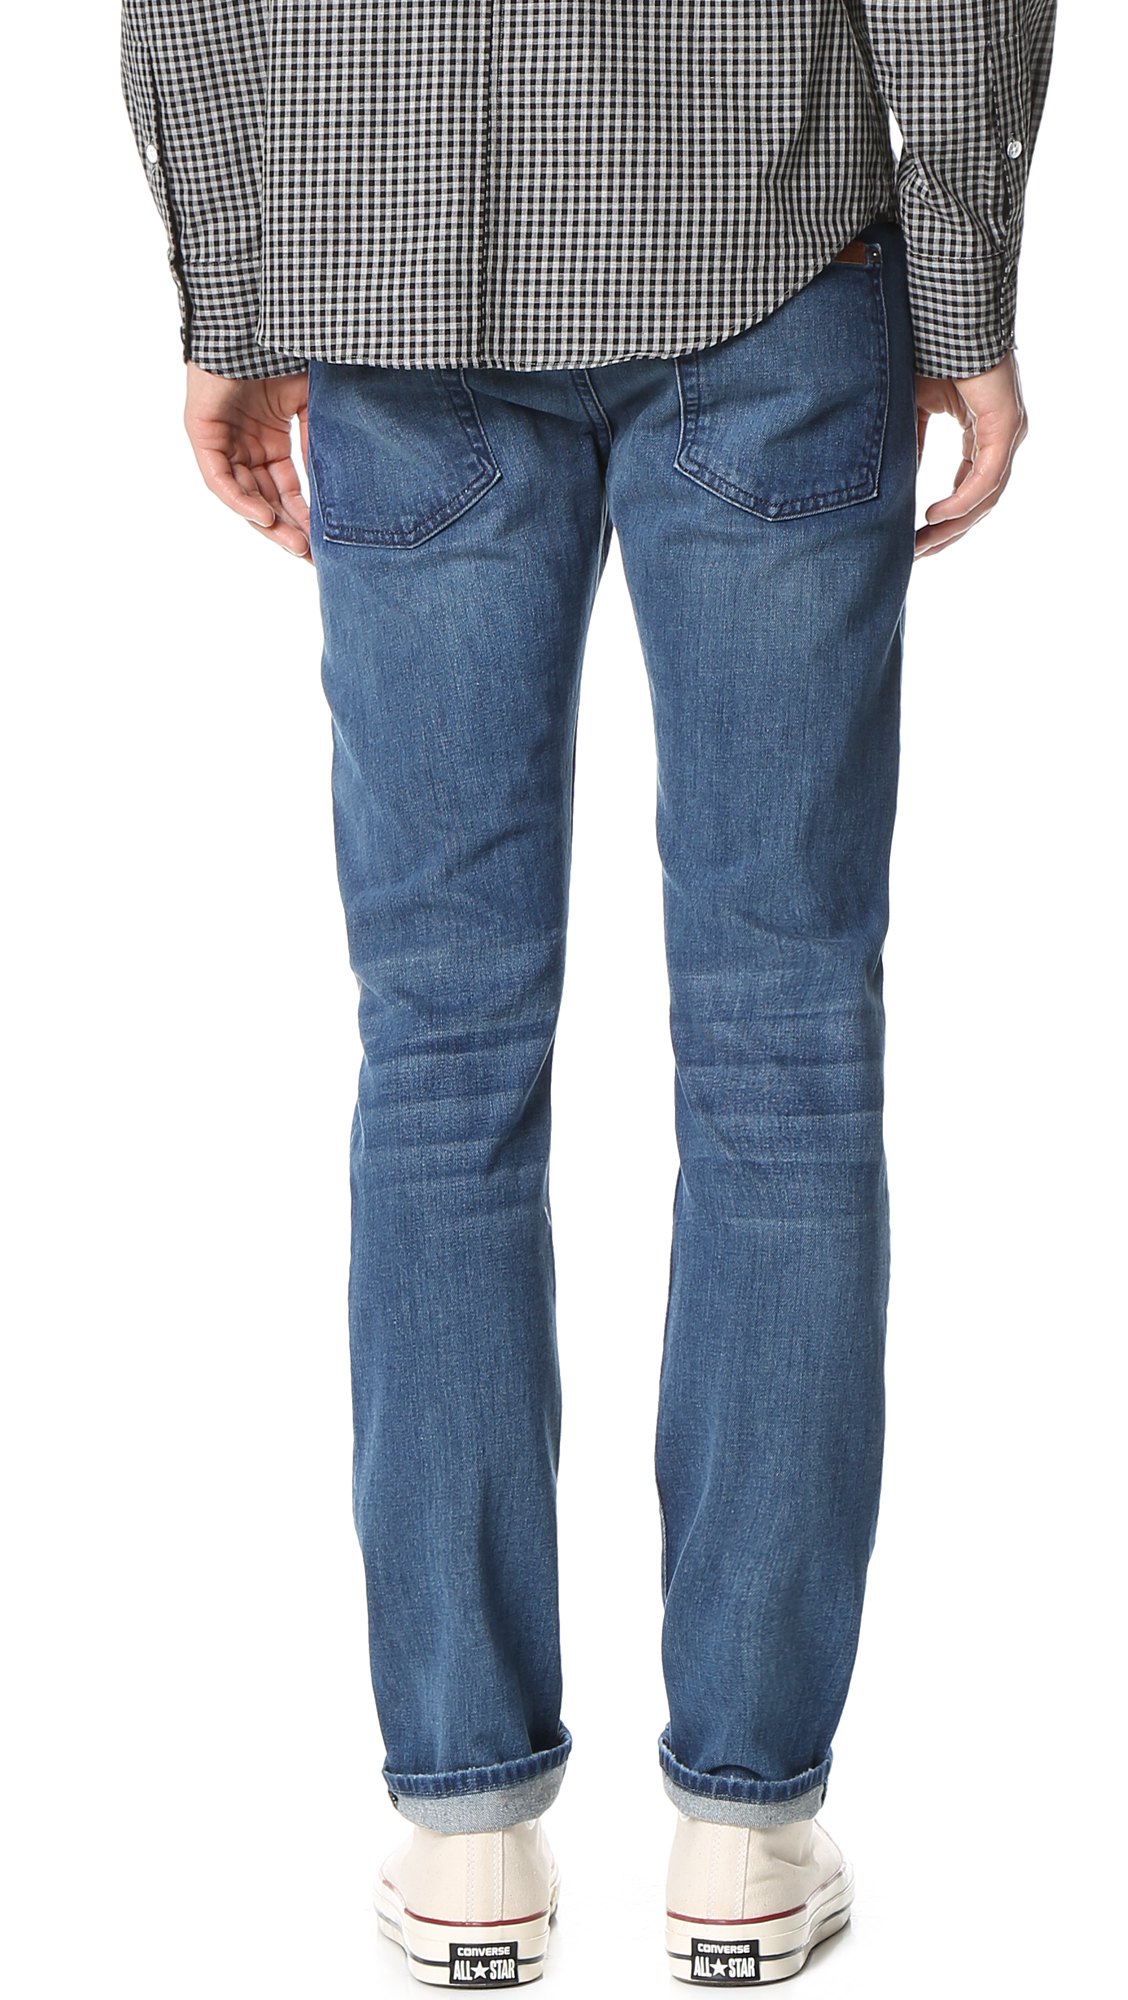 7 for all mankind paxtyn tapered jeans in blue for men lyst. Black Bedroom Furniture Sets. Home Design Ideas